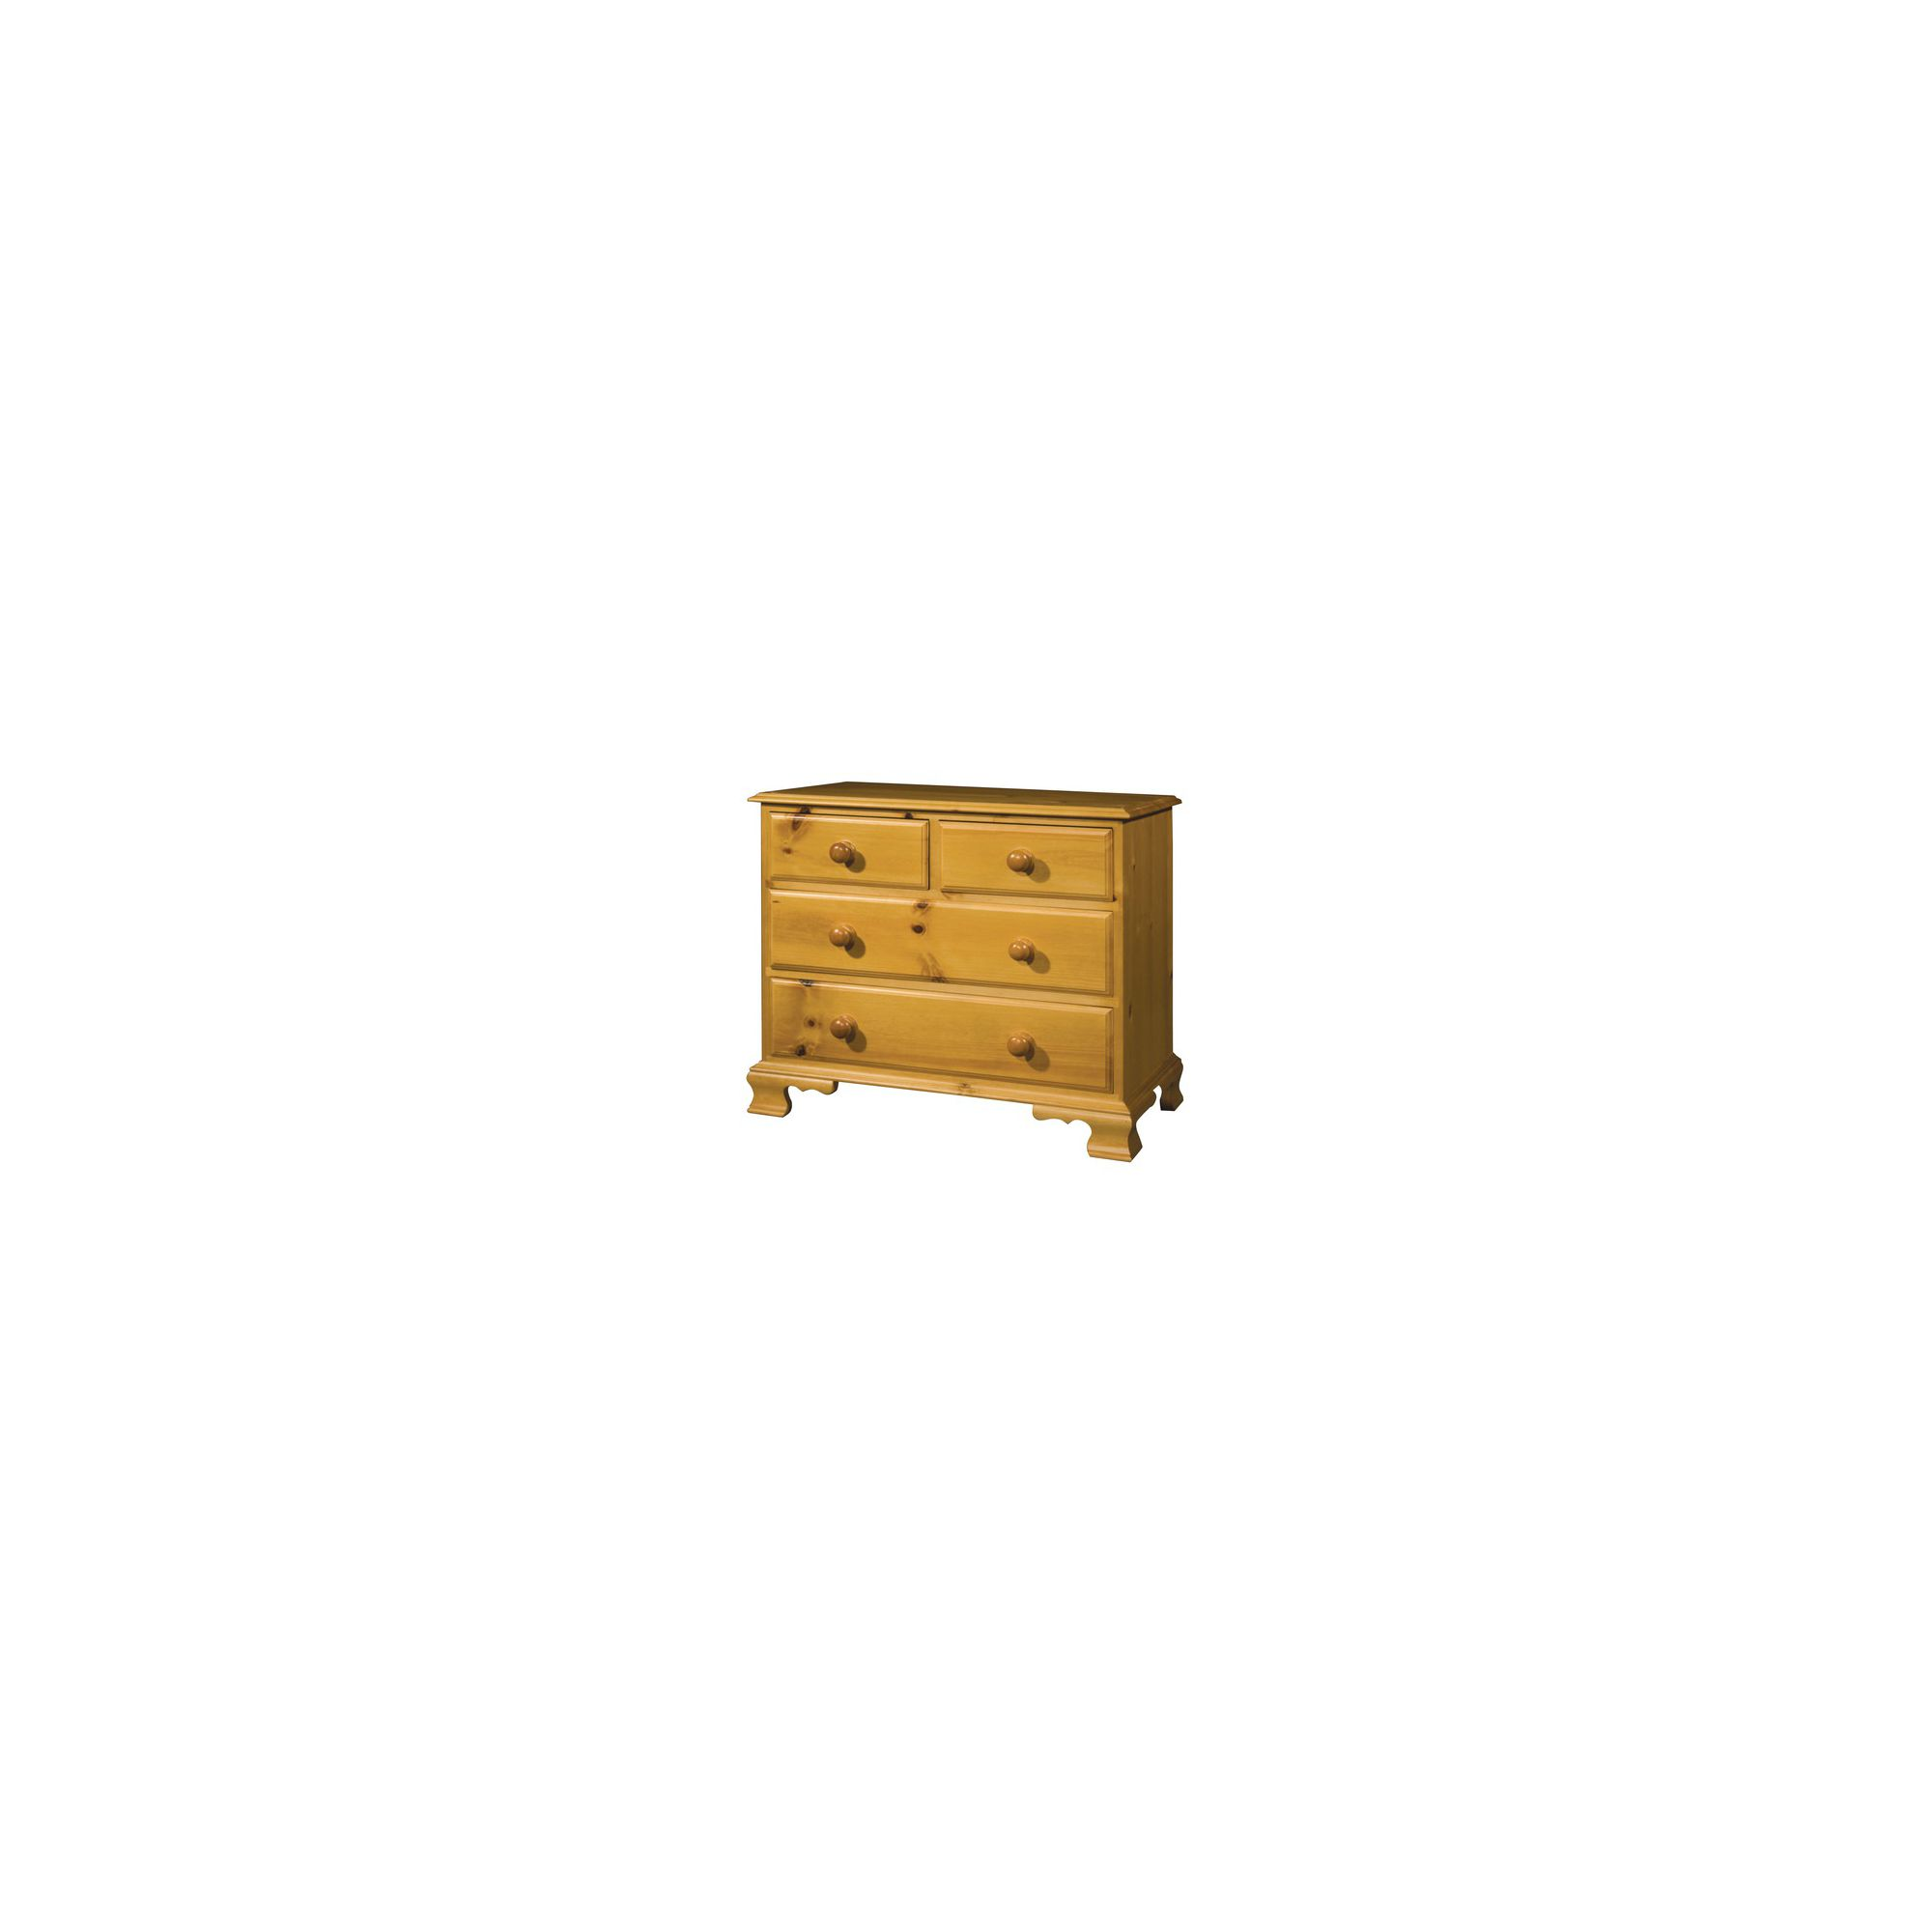 Alterton Furniture Otley 4 Drawer Chest - Unfinished at Tesco Direct